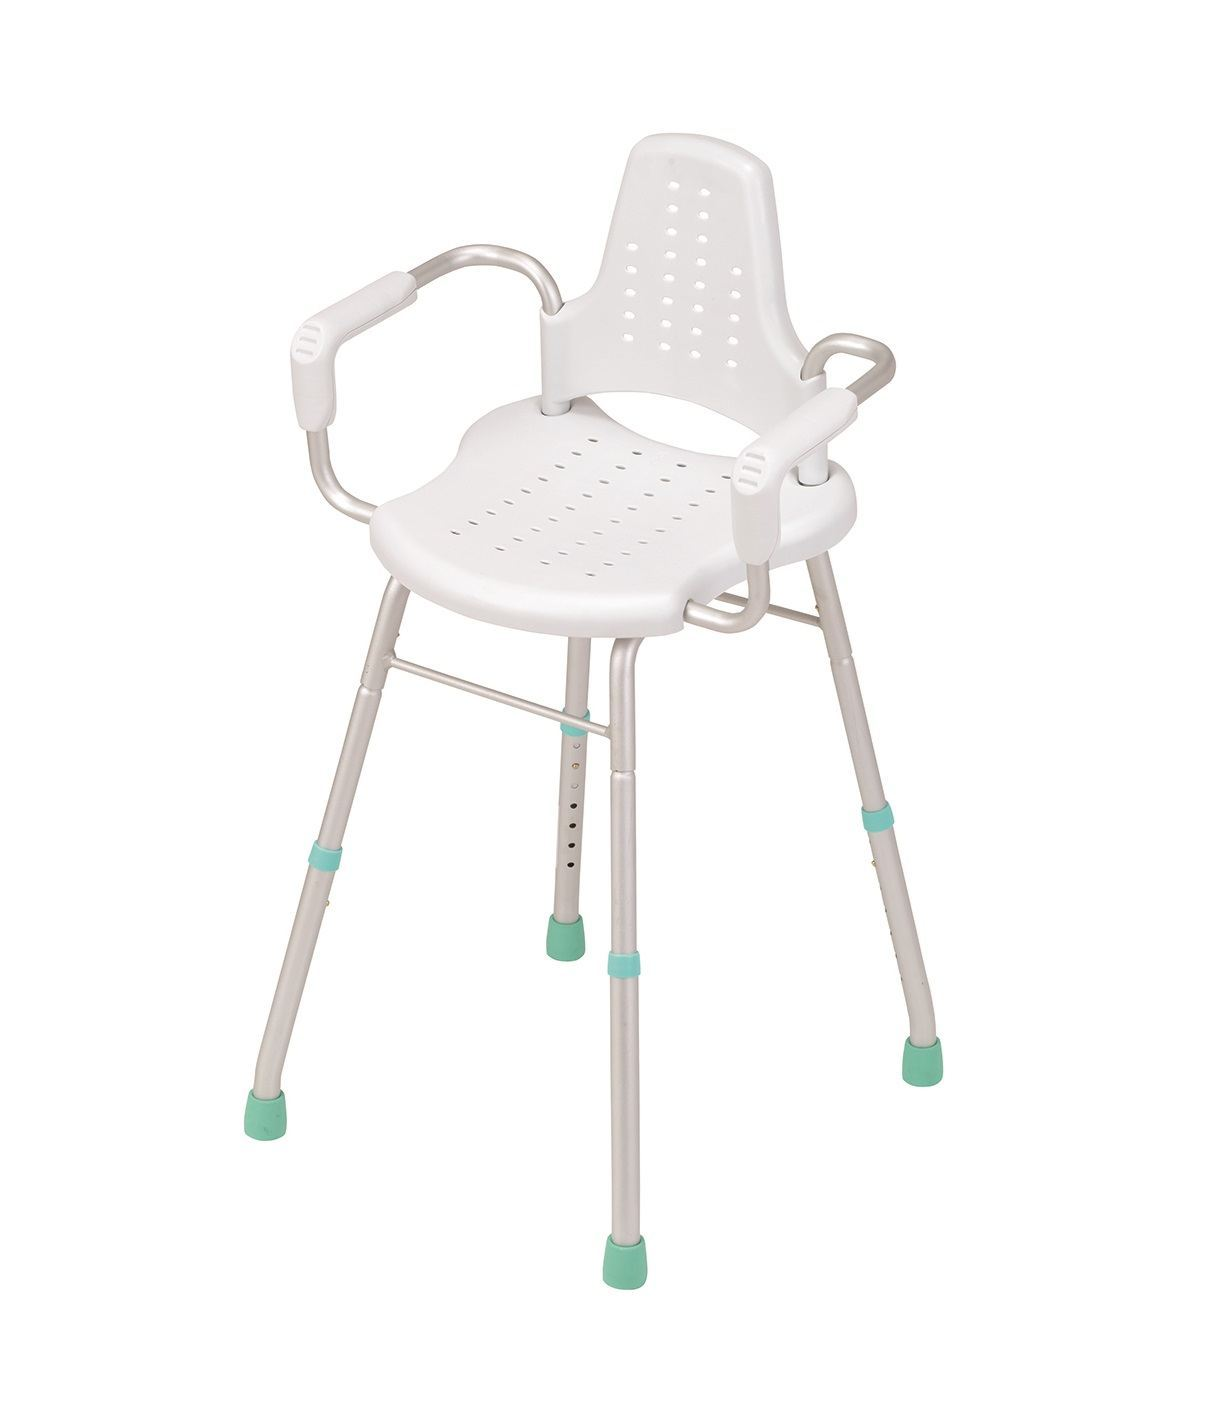 seat with image aperture shower self chairs propelled chair mobile ring commodes